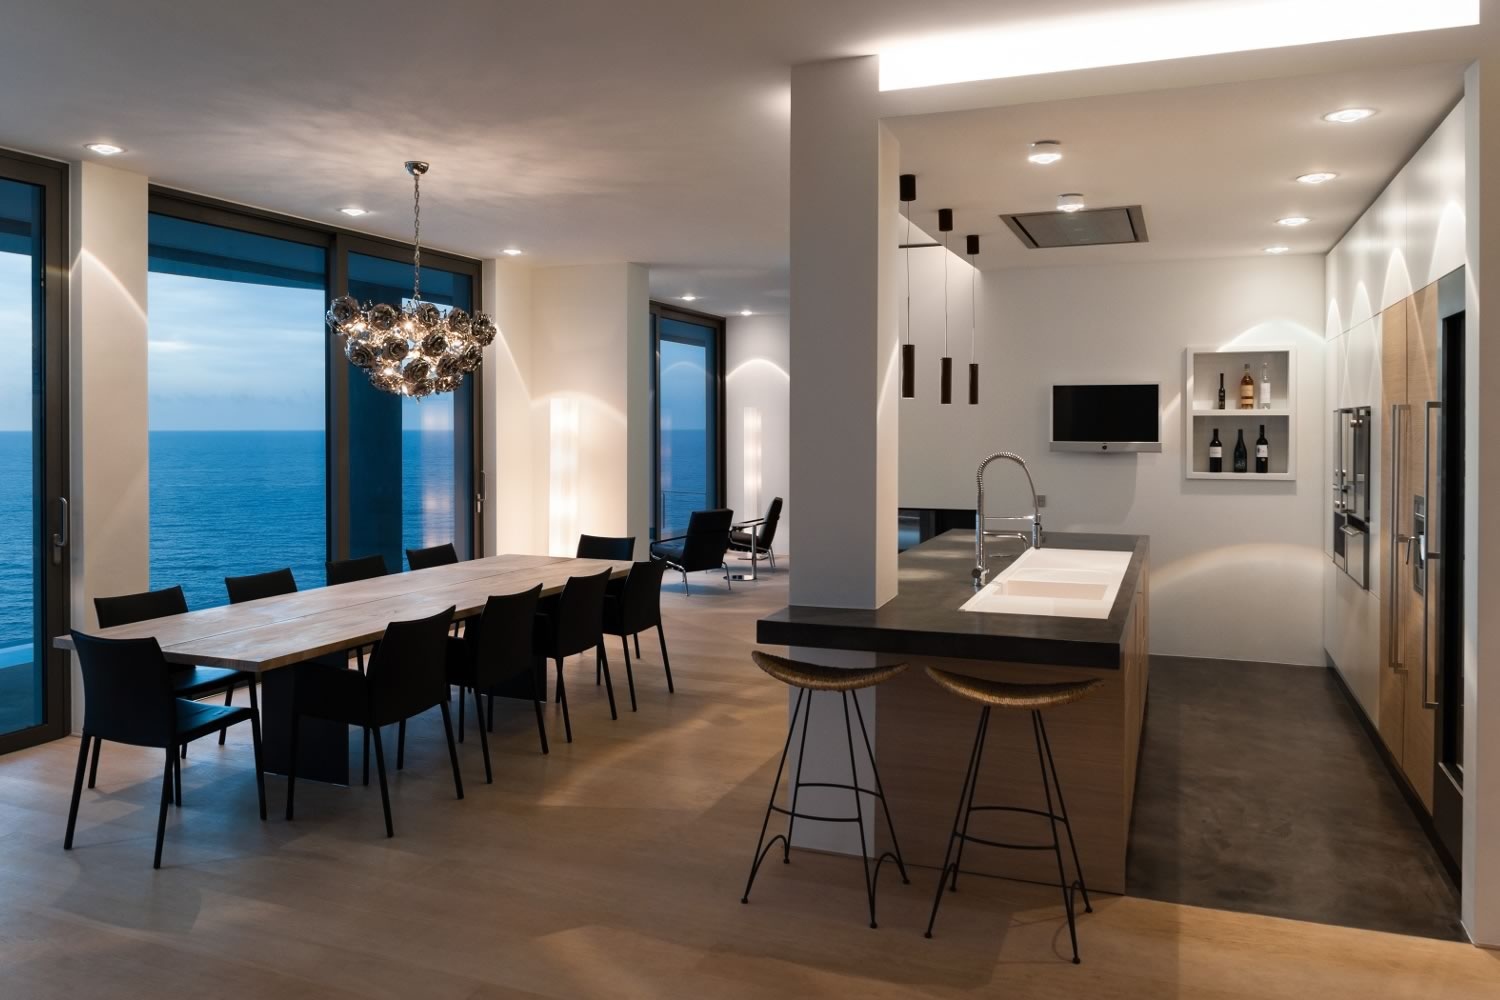 villa am meer mallorca m13 architekten. Black Bedroom Furniture Sets. Home Design Ideas